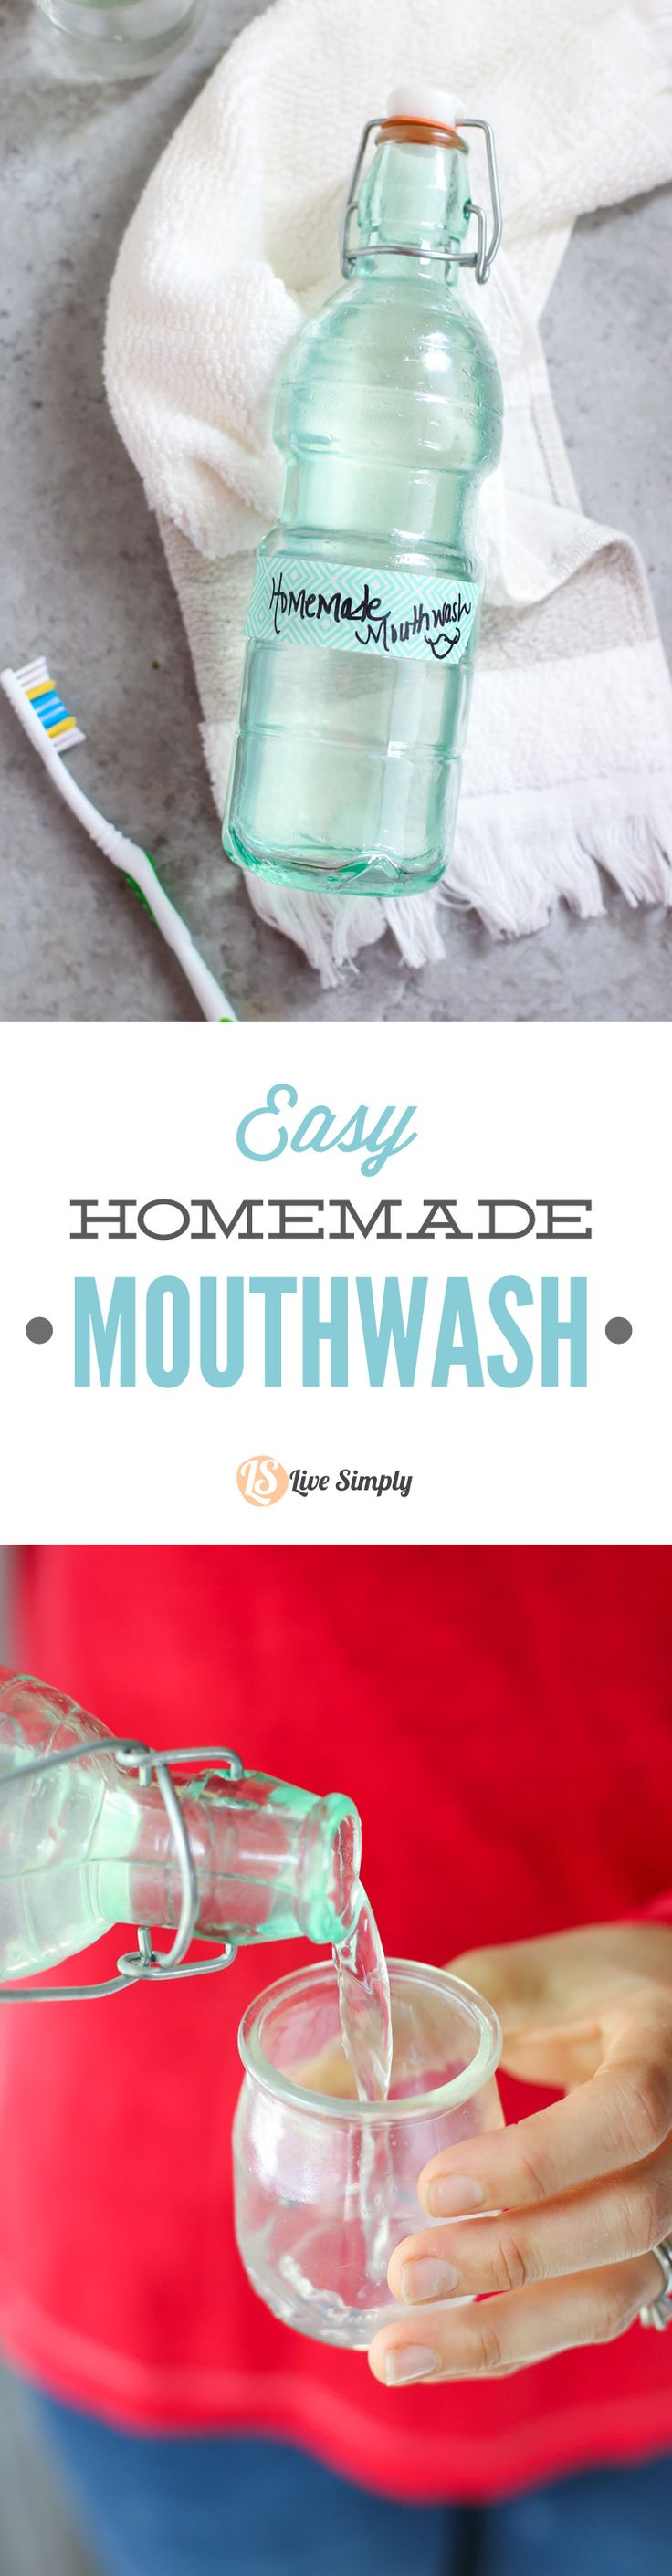 Sooo easy!! This homemade mouthwash is only made with five ingredients: water, aloe, baking soda, and peppermint and tea tree oil. No turning back to store-bought ever again! http://livesimply.me/2015/10/01/easy-homemade-mouthwash/